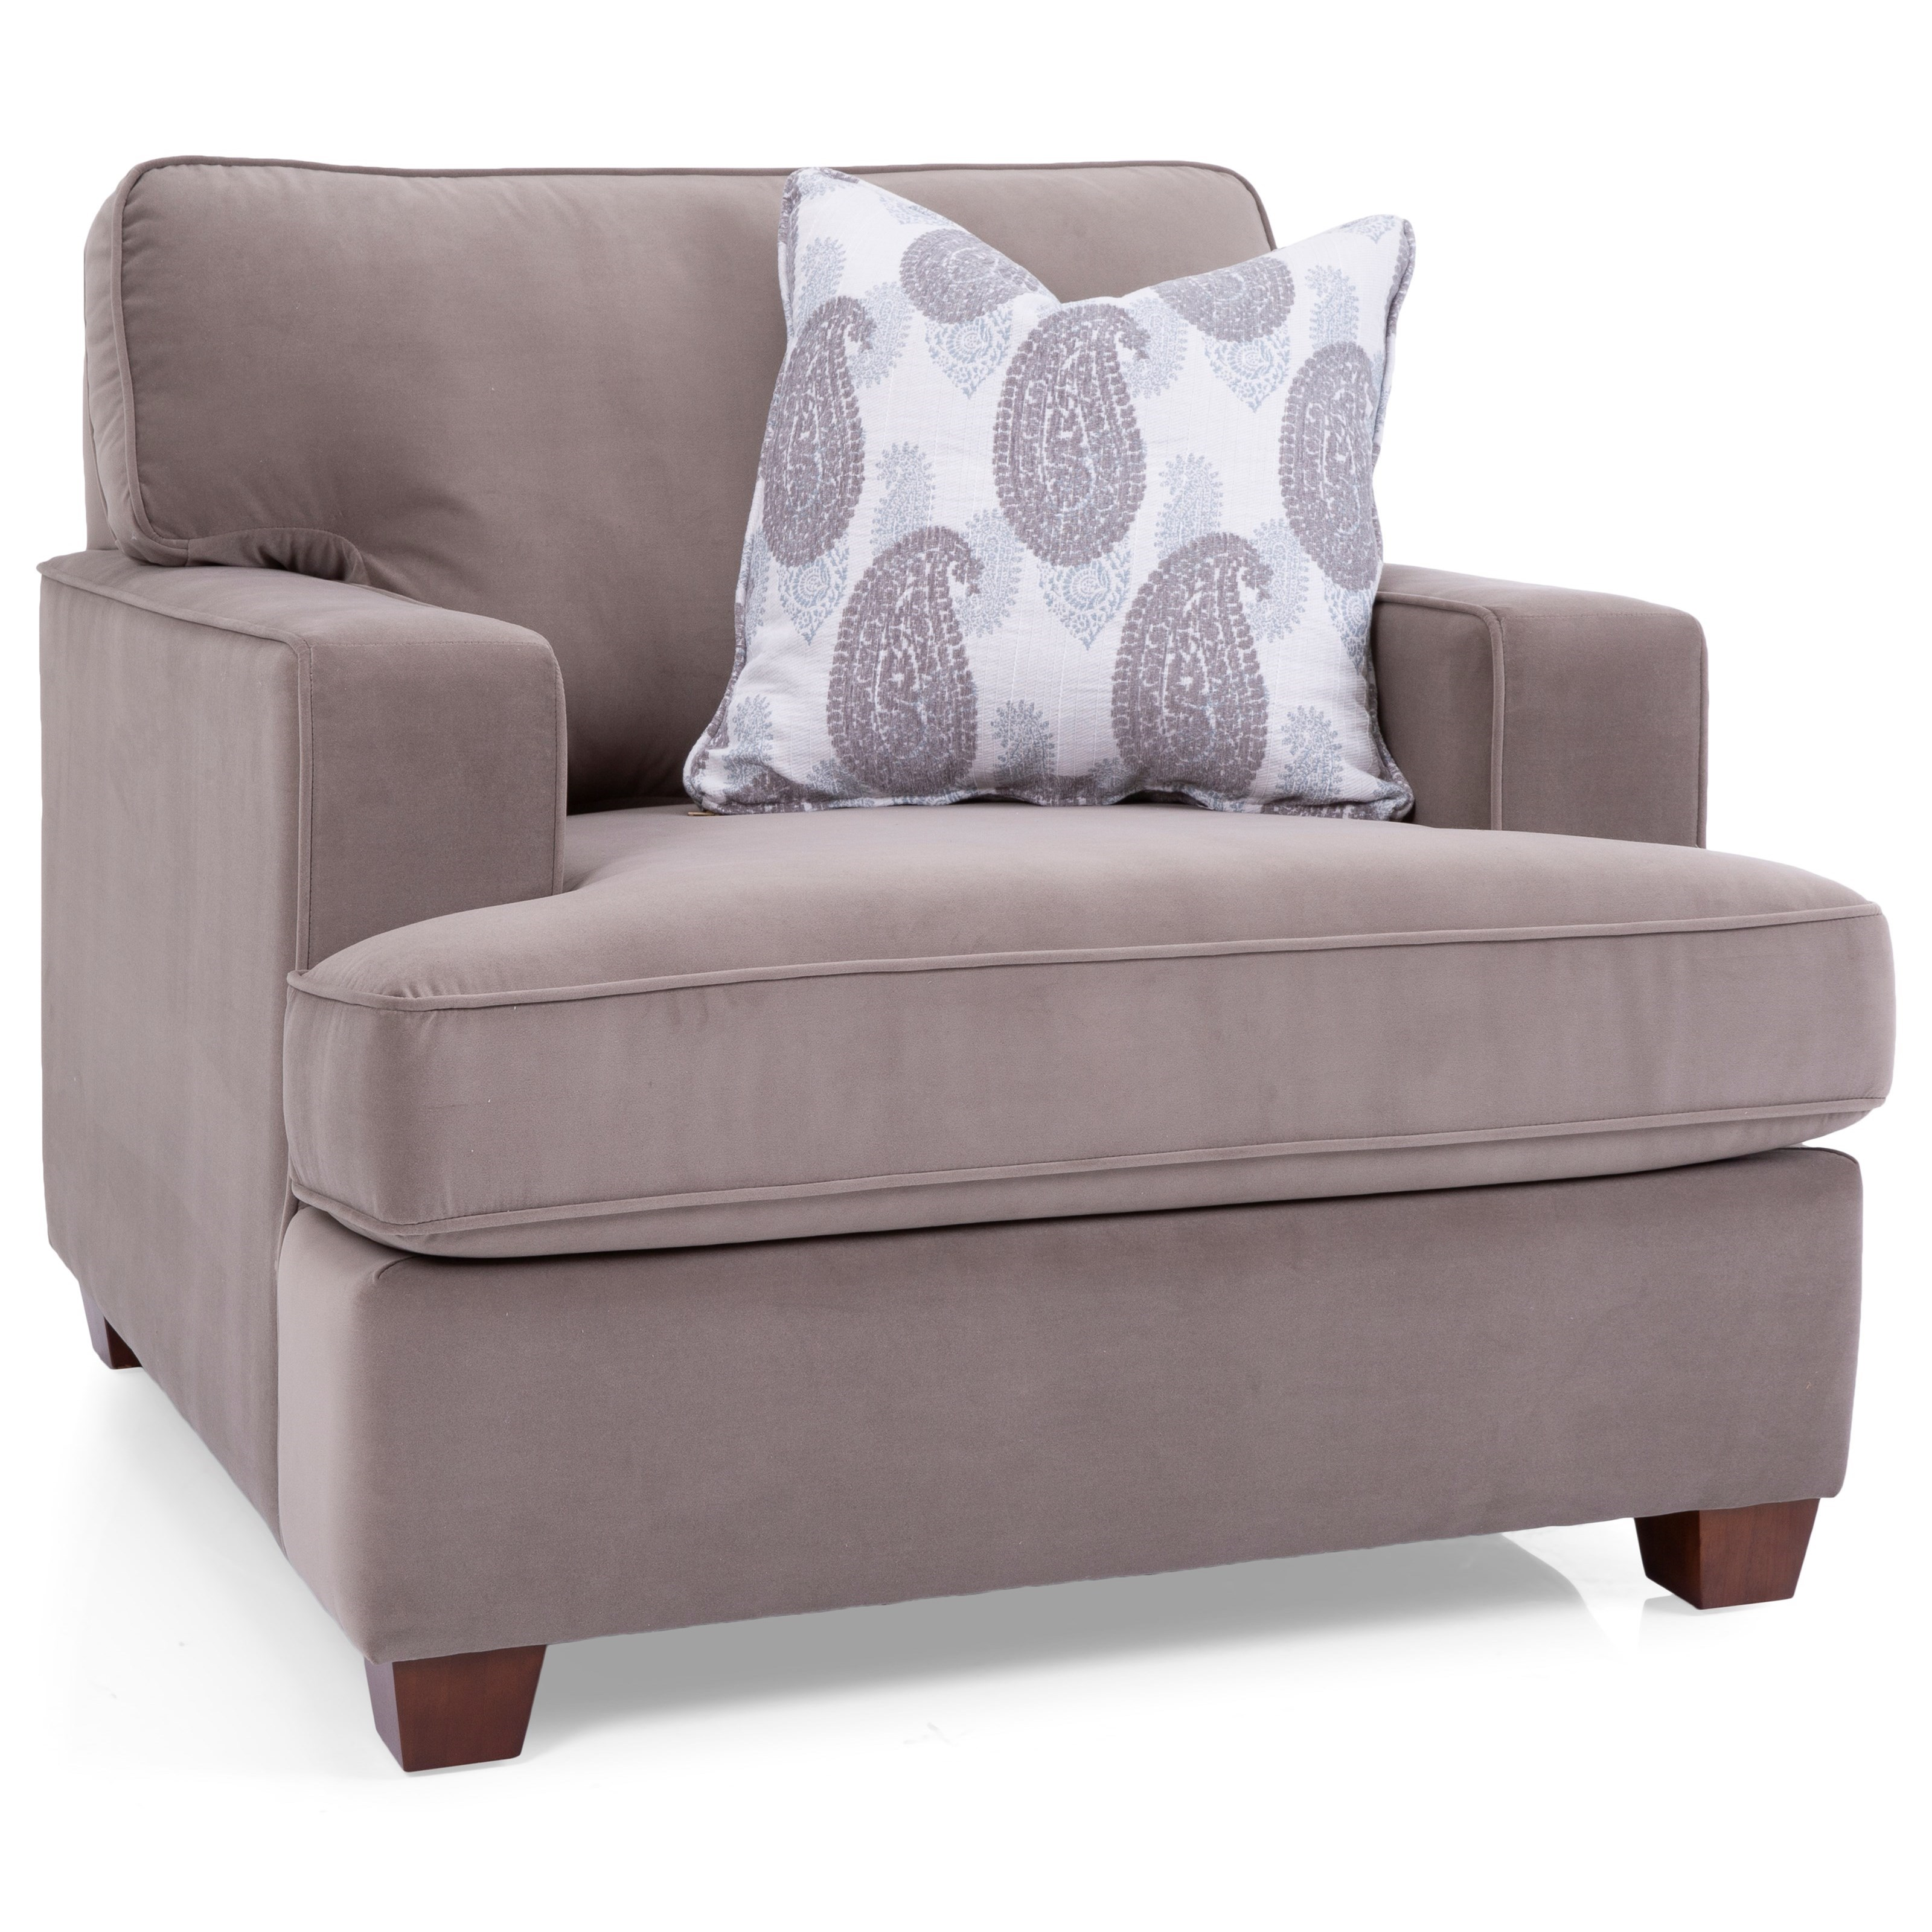 2052 Chair by Decor-Rest at Reid's Furniture